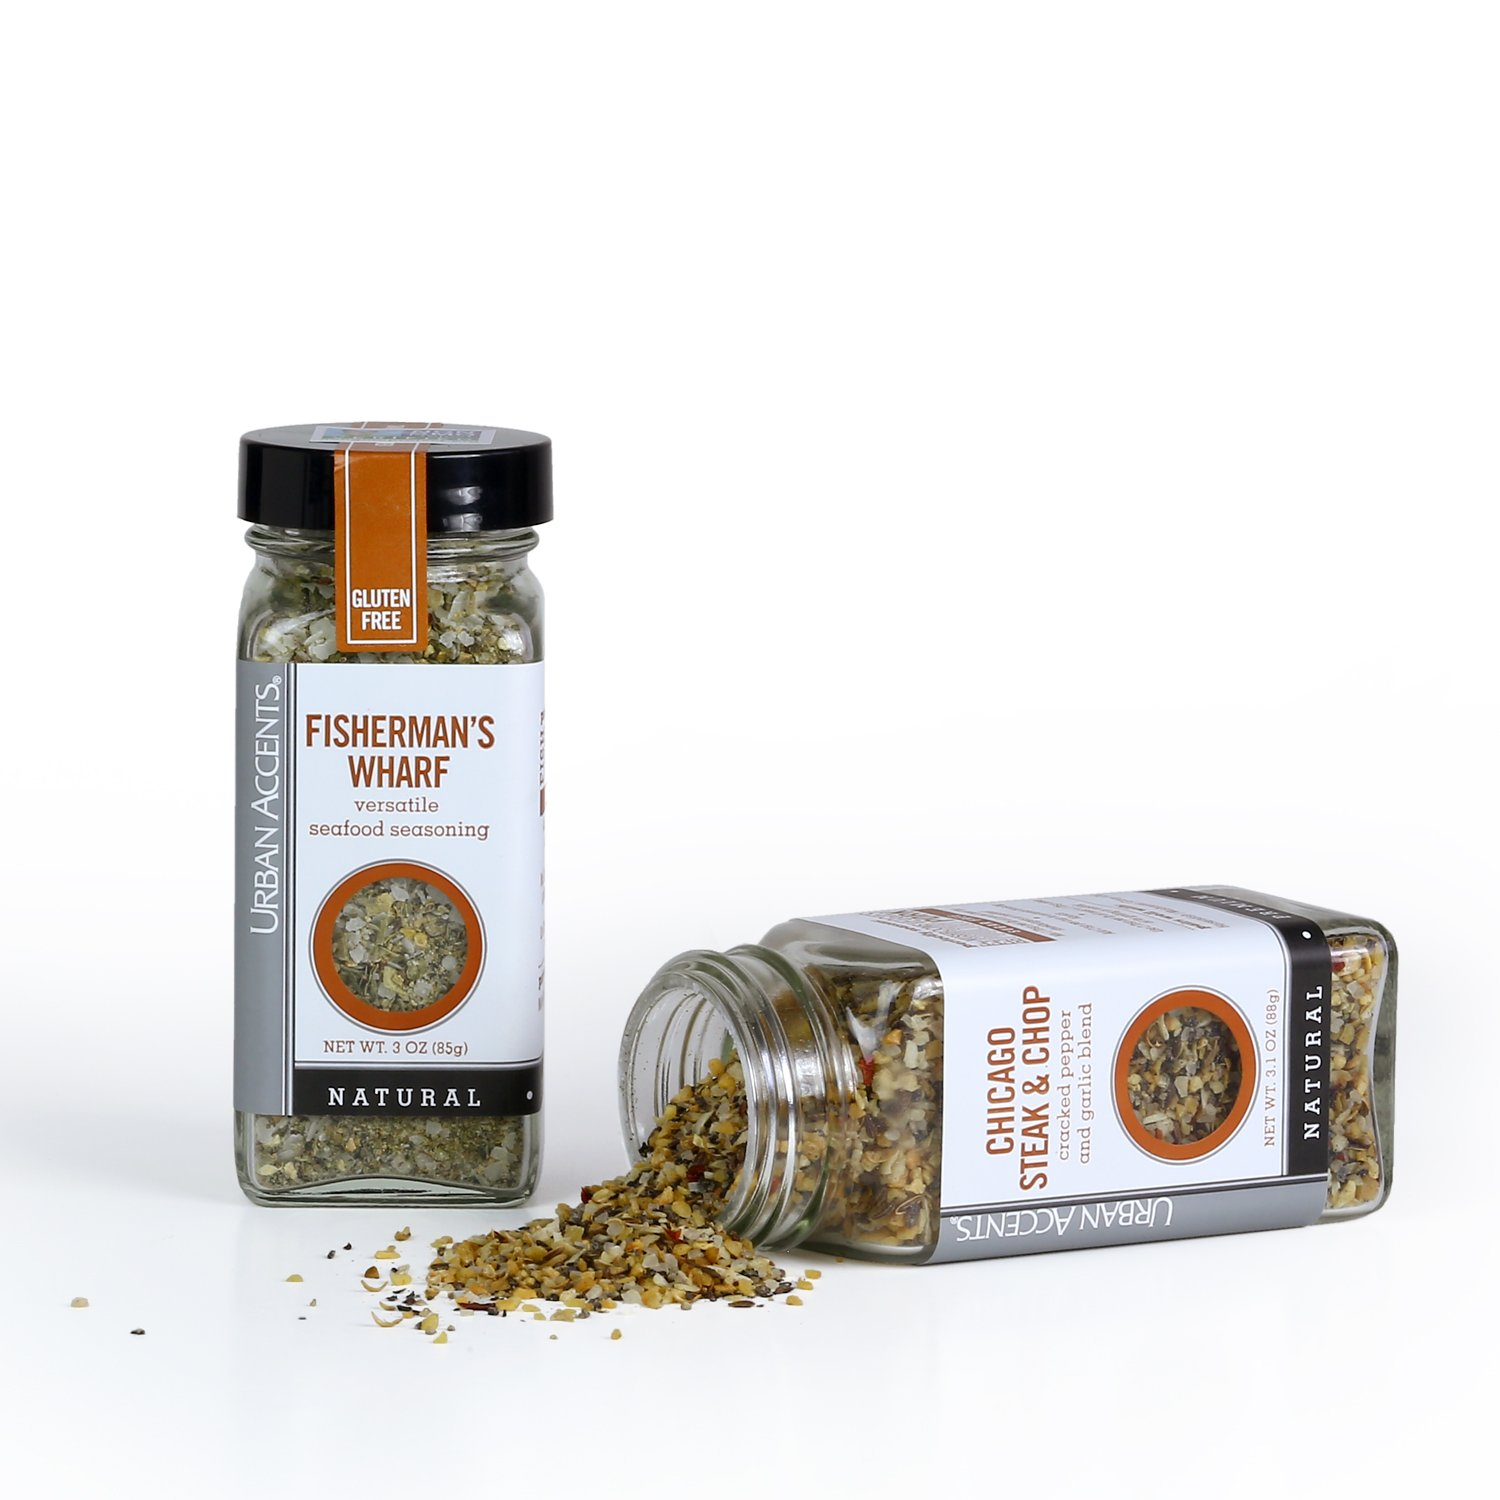 Urban Accents FOODIE ESSENTIALS, Gourmet Gift Set, A Collection of Spices, Veggie Roasters and Dryglazes, Perfect for Weddings, Housewarmings or Any Occasion by Urban Accents (Image #3)